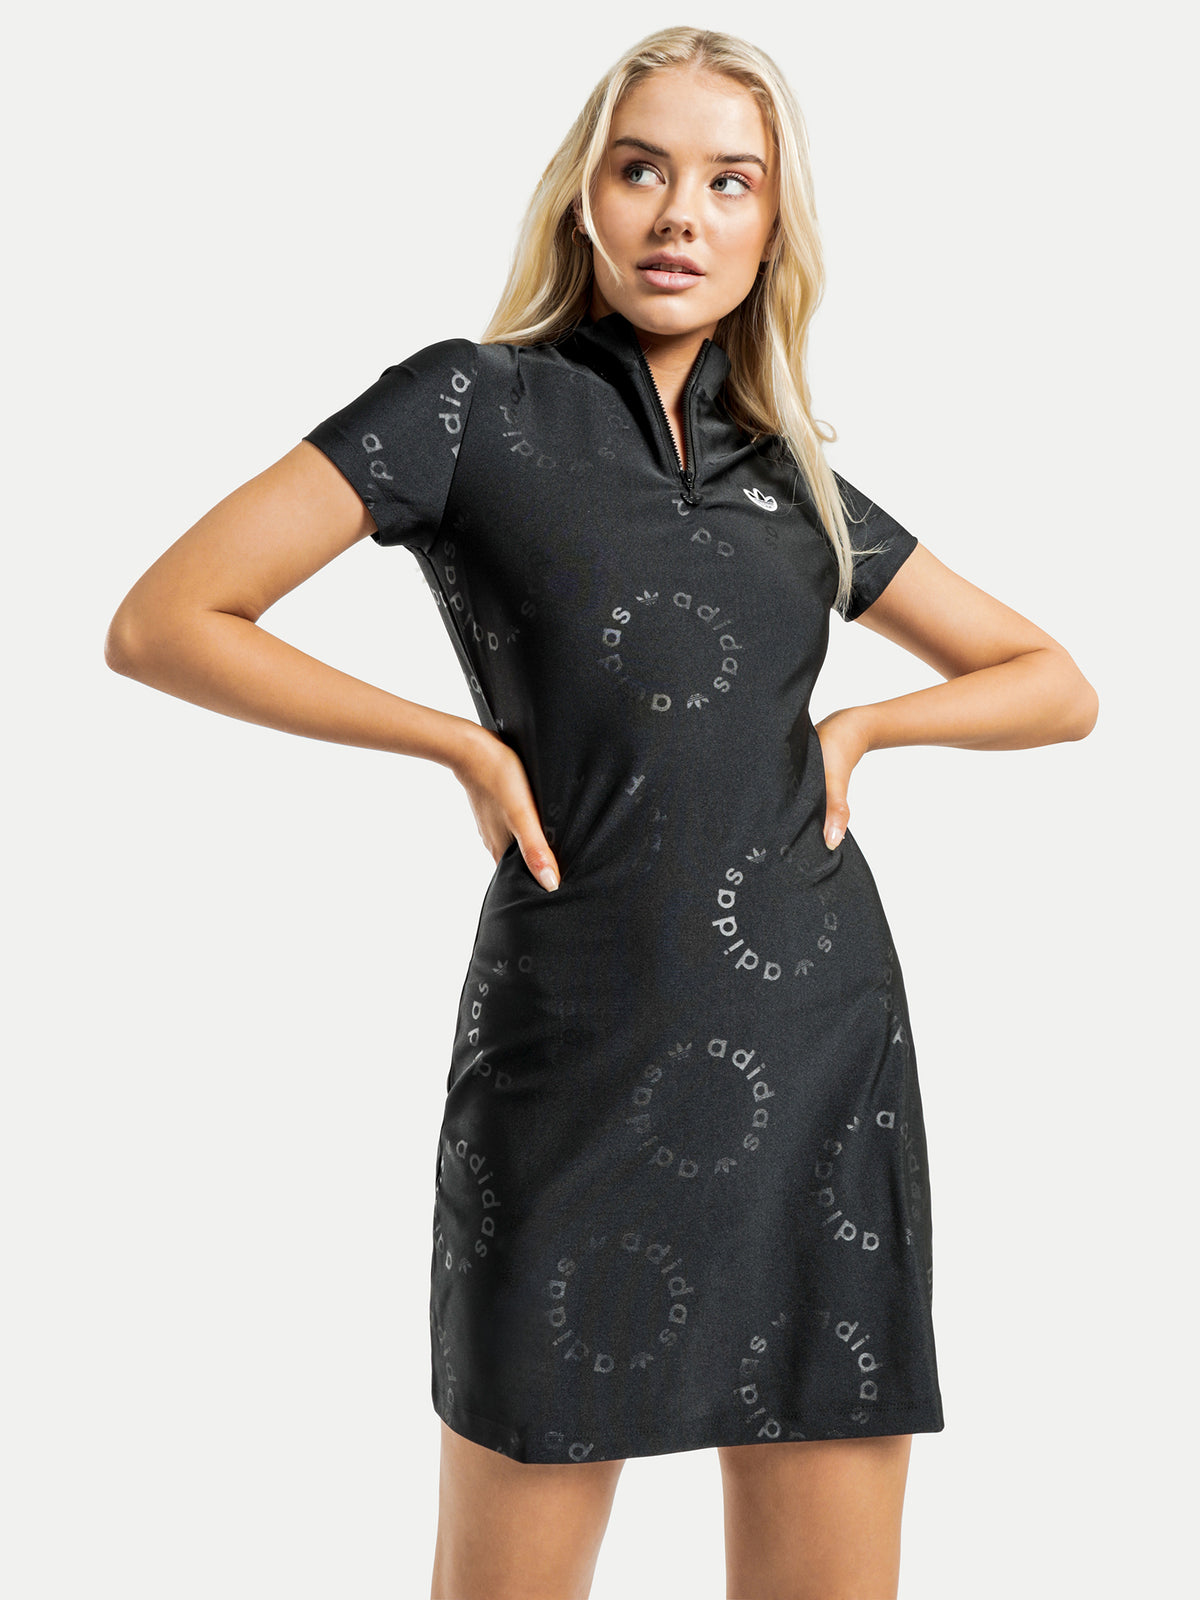 Short Sleeve Dress in Black